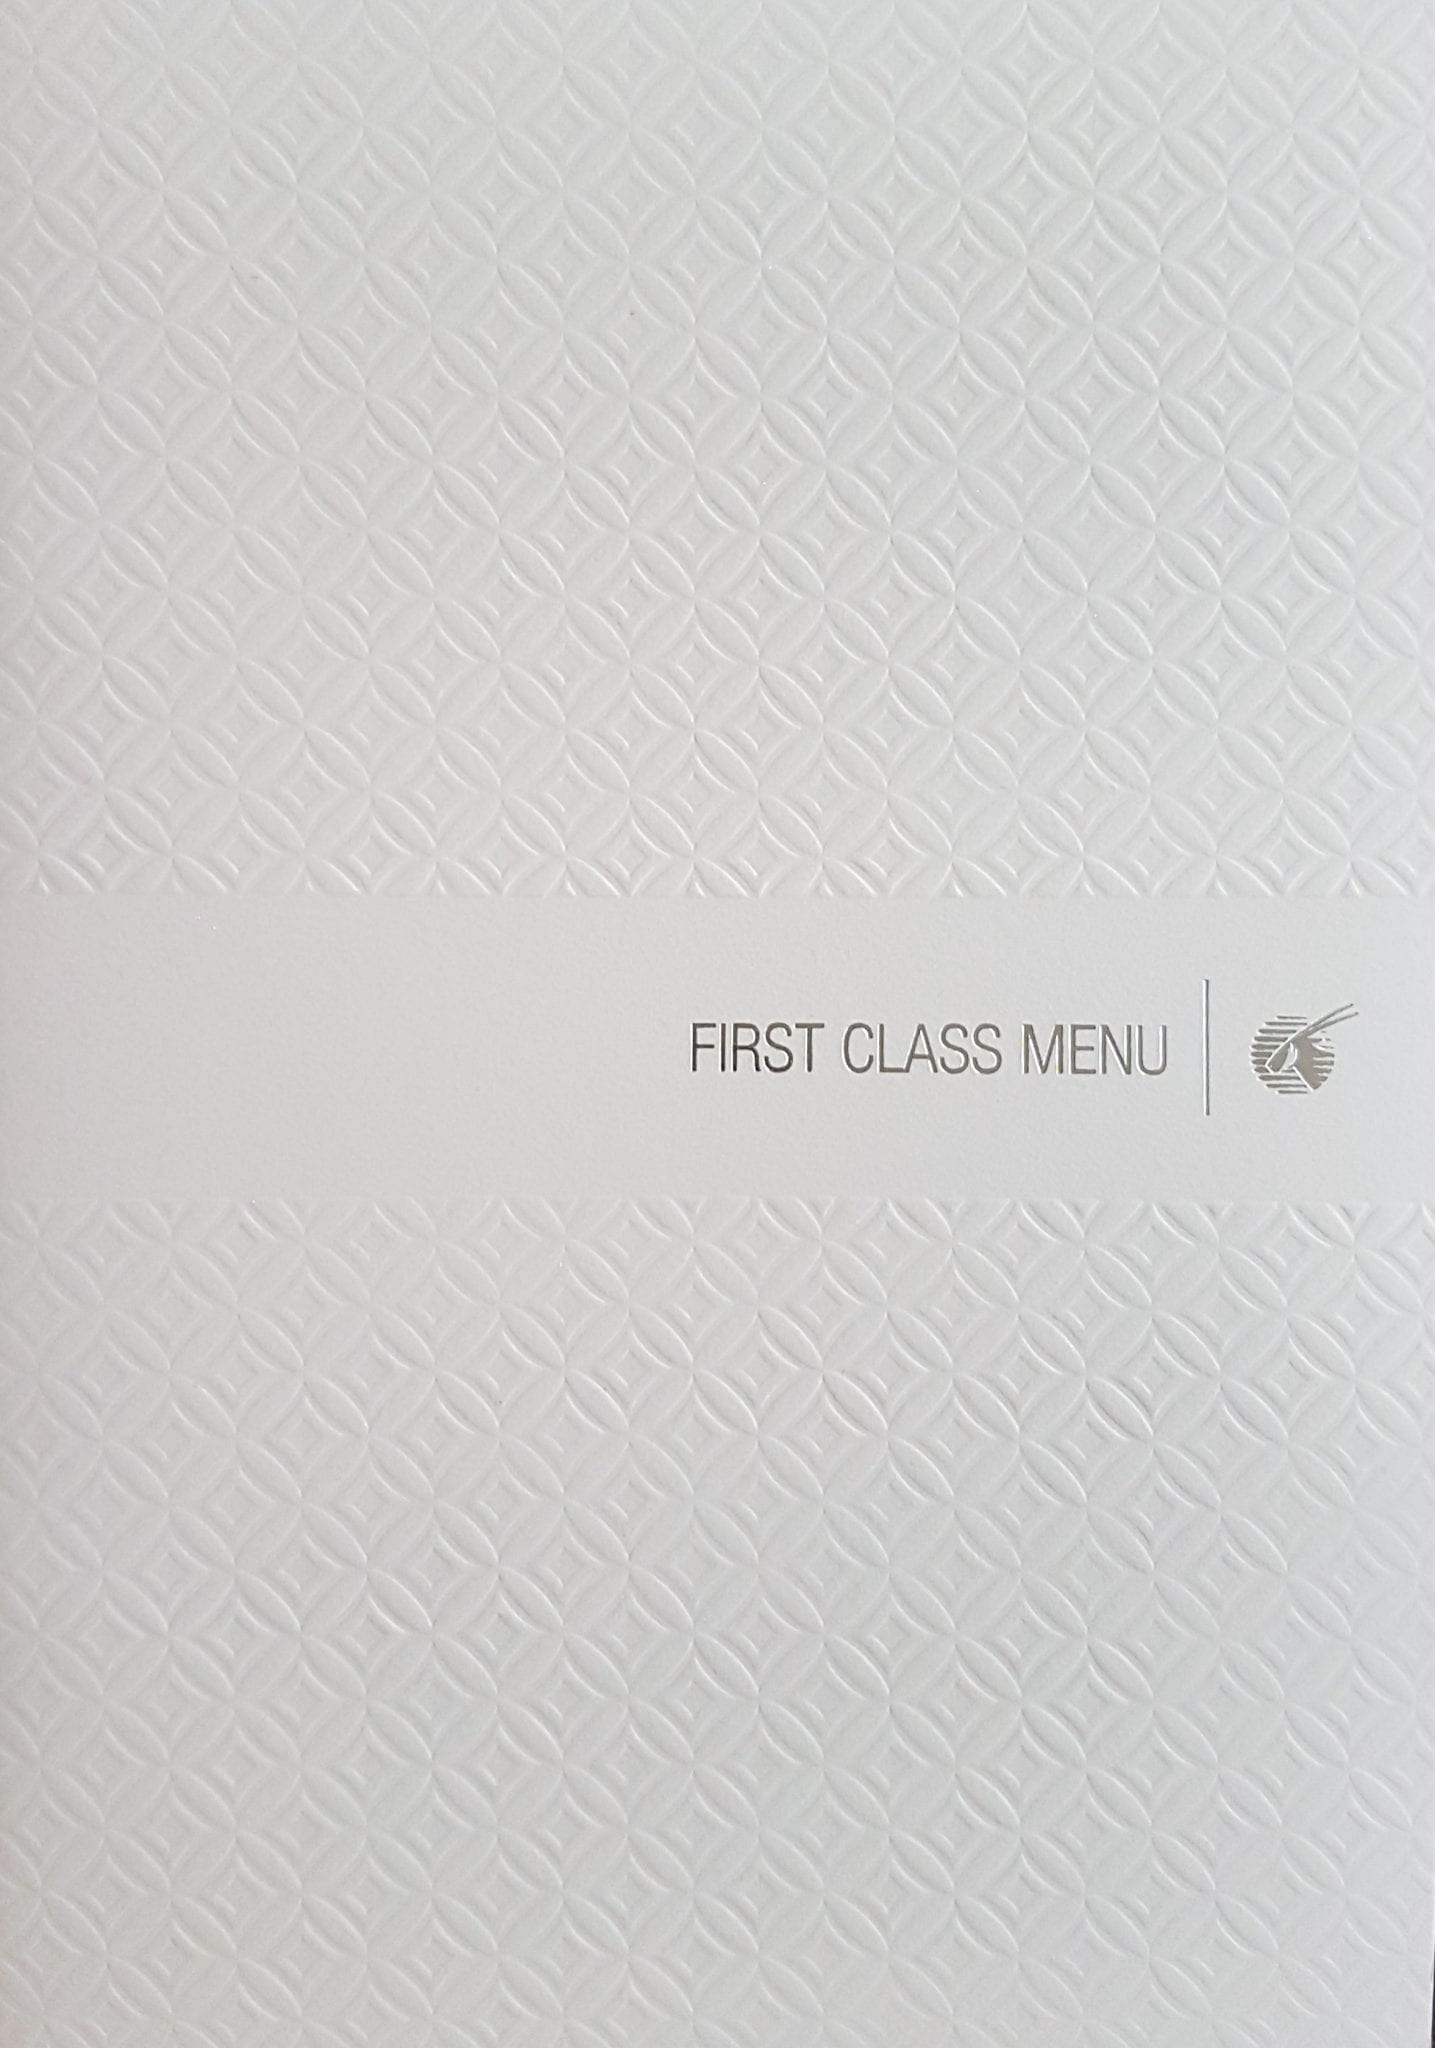 QR F SYD DOH 52 - REVIEW - Qatar : First Class - Sydney SYD to Doha DOH (A380)